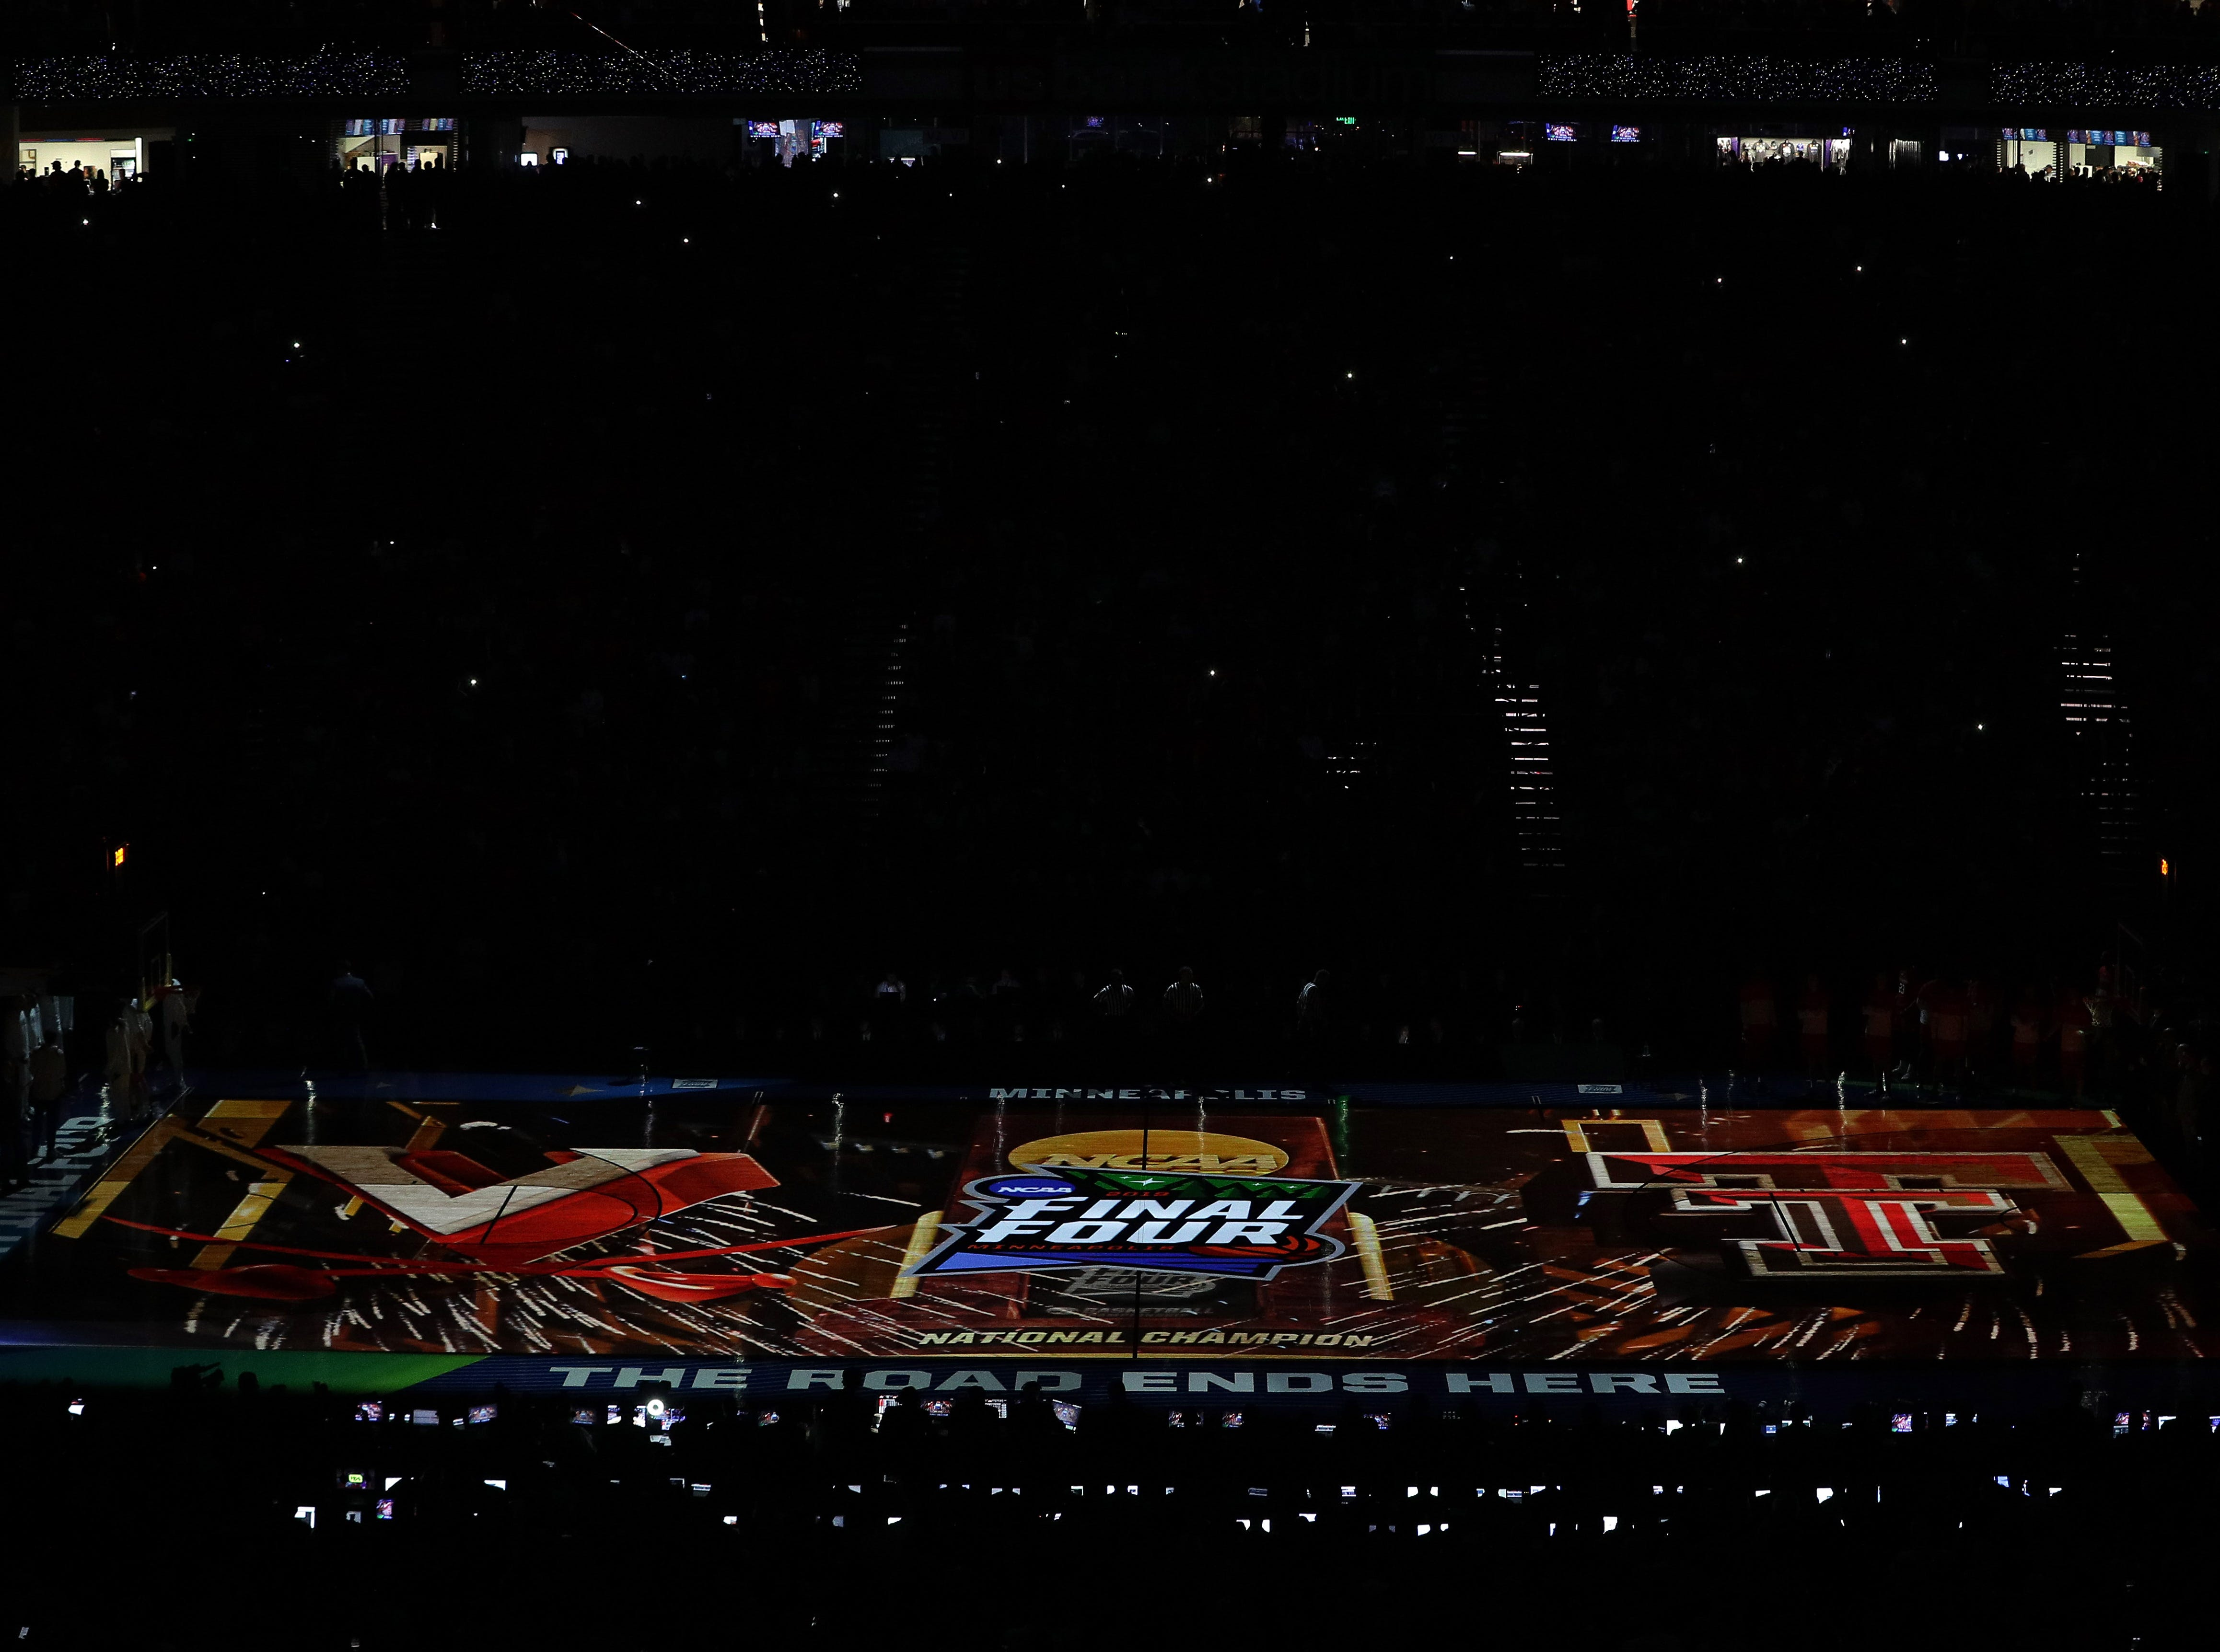 Apr 8, 2019; Minneapolis, MN, USA; A general view of US Bank Stadium before the championship game of the 2019 men's Final Four between the Virginia Cavaliers and the Texas Tech Red Raiders at US Bank Stadium. Mandatory Credit: Brace Hemmelgarn-USA TODAY Sports